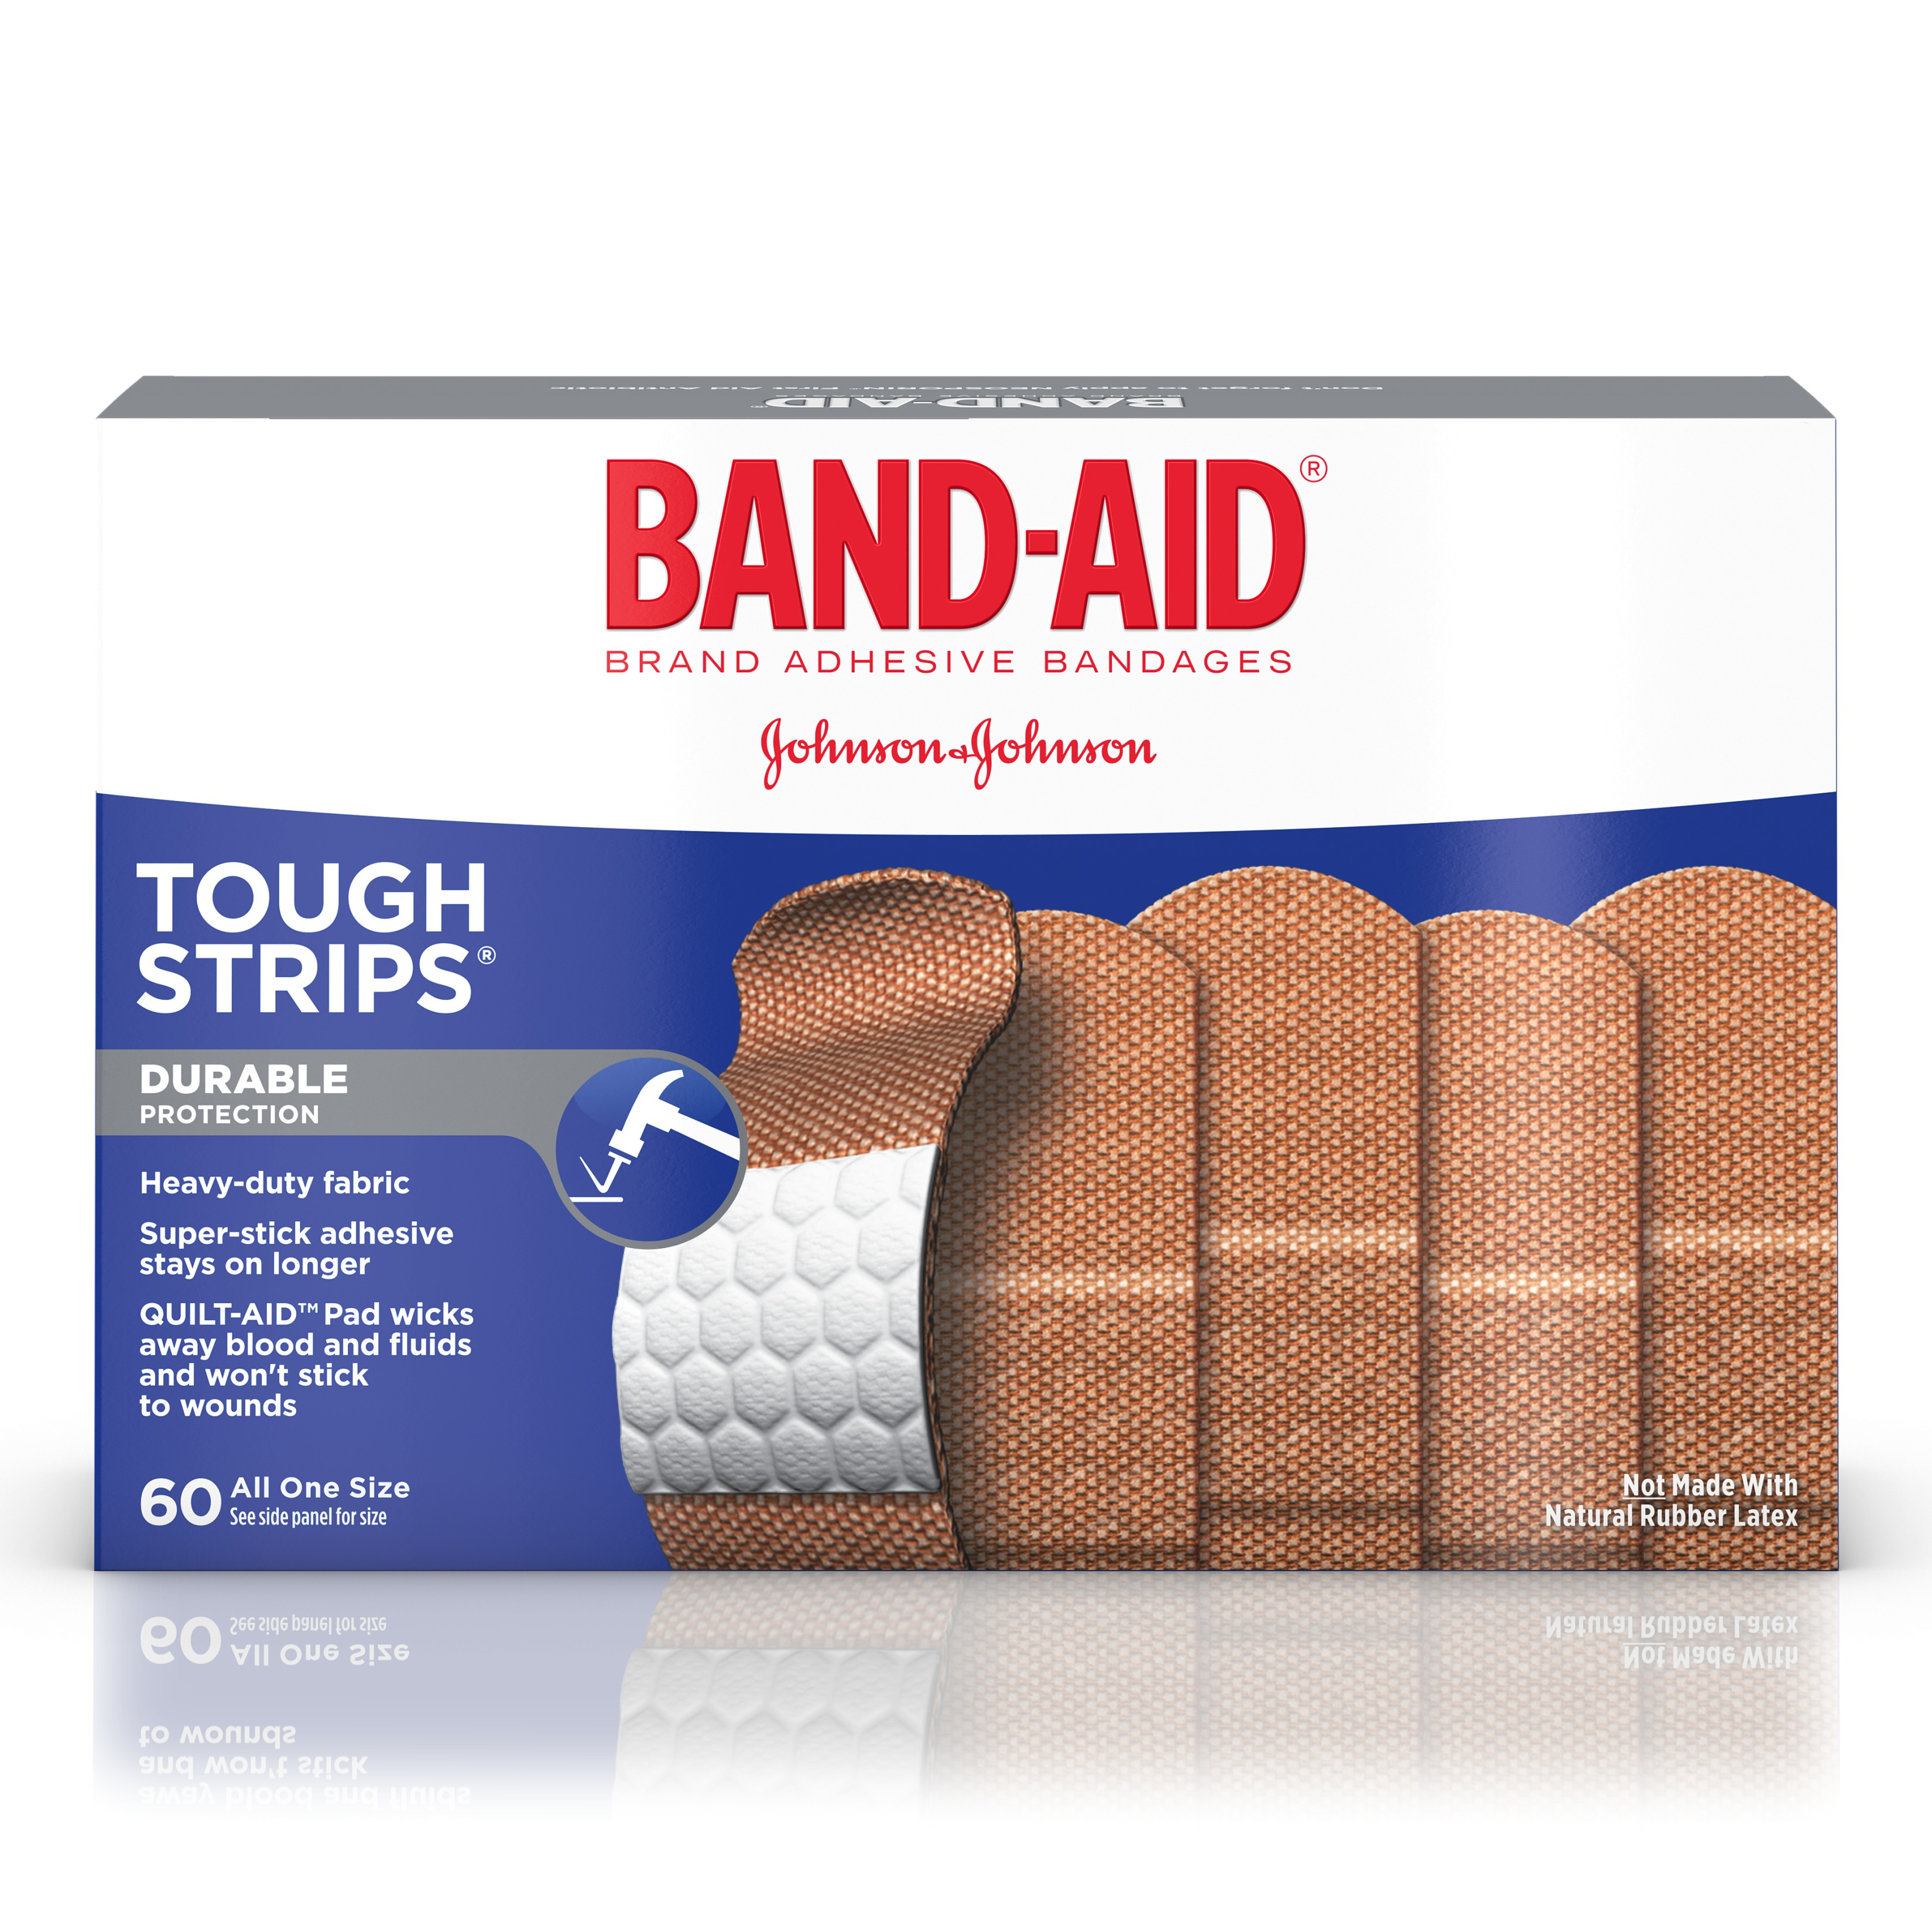 BAND-AID Brand TOUGH-STRIPS Adhesive Bandages, Durable Protection for Minor Cuts and Scrapes, 60 Count by Johnson & Johnson